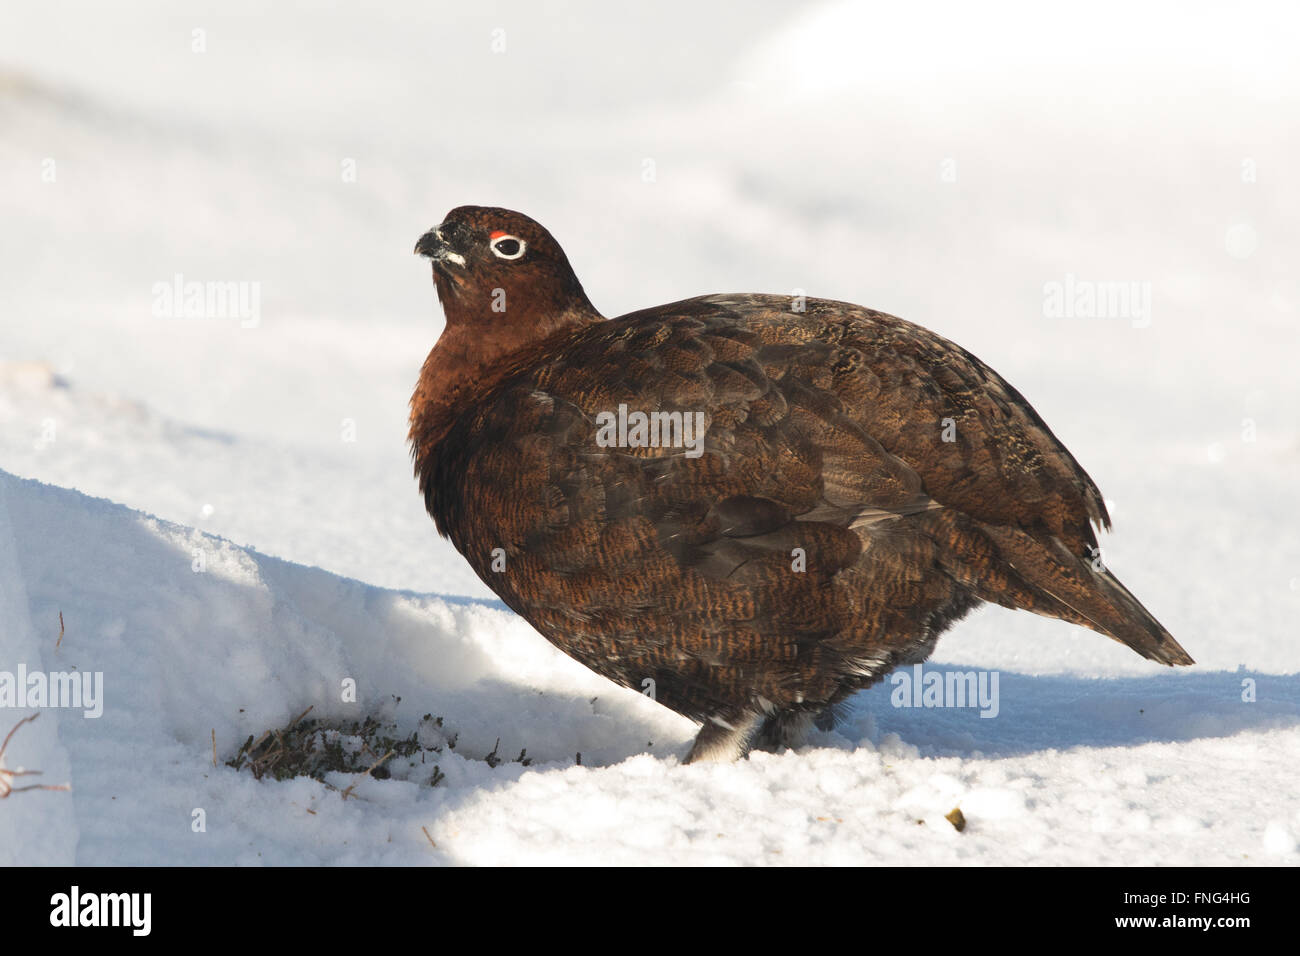 male Red Grouse (Lagopus lagopus scotica) standing in the snow - Stock Image